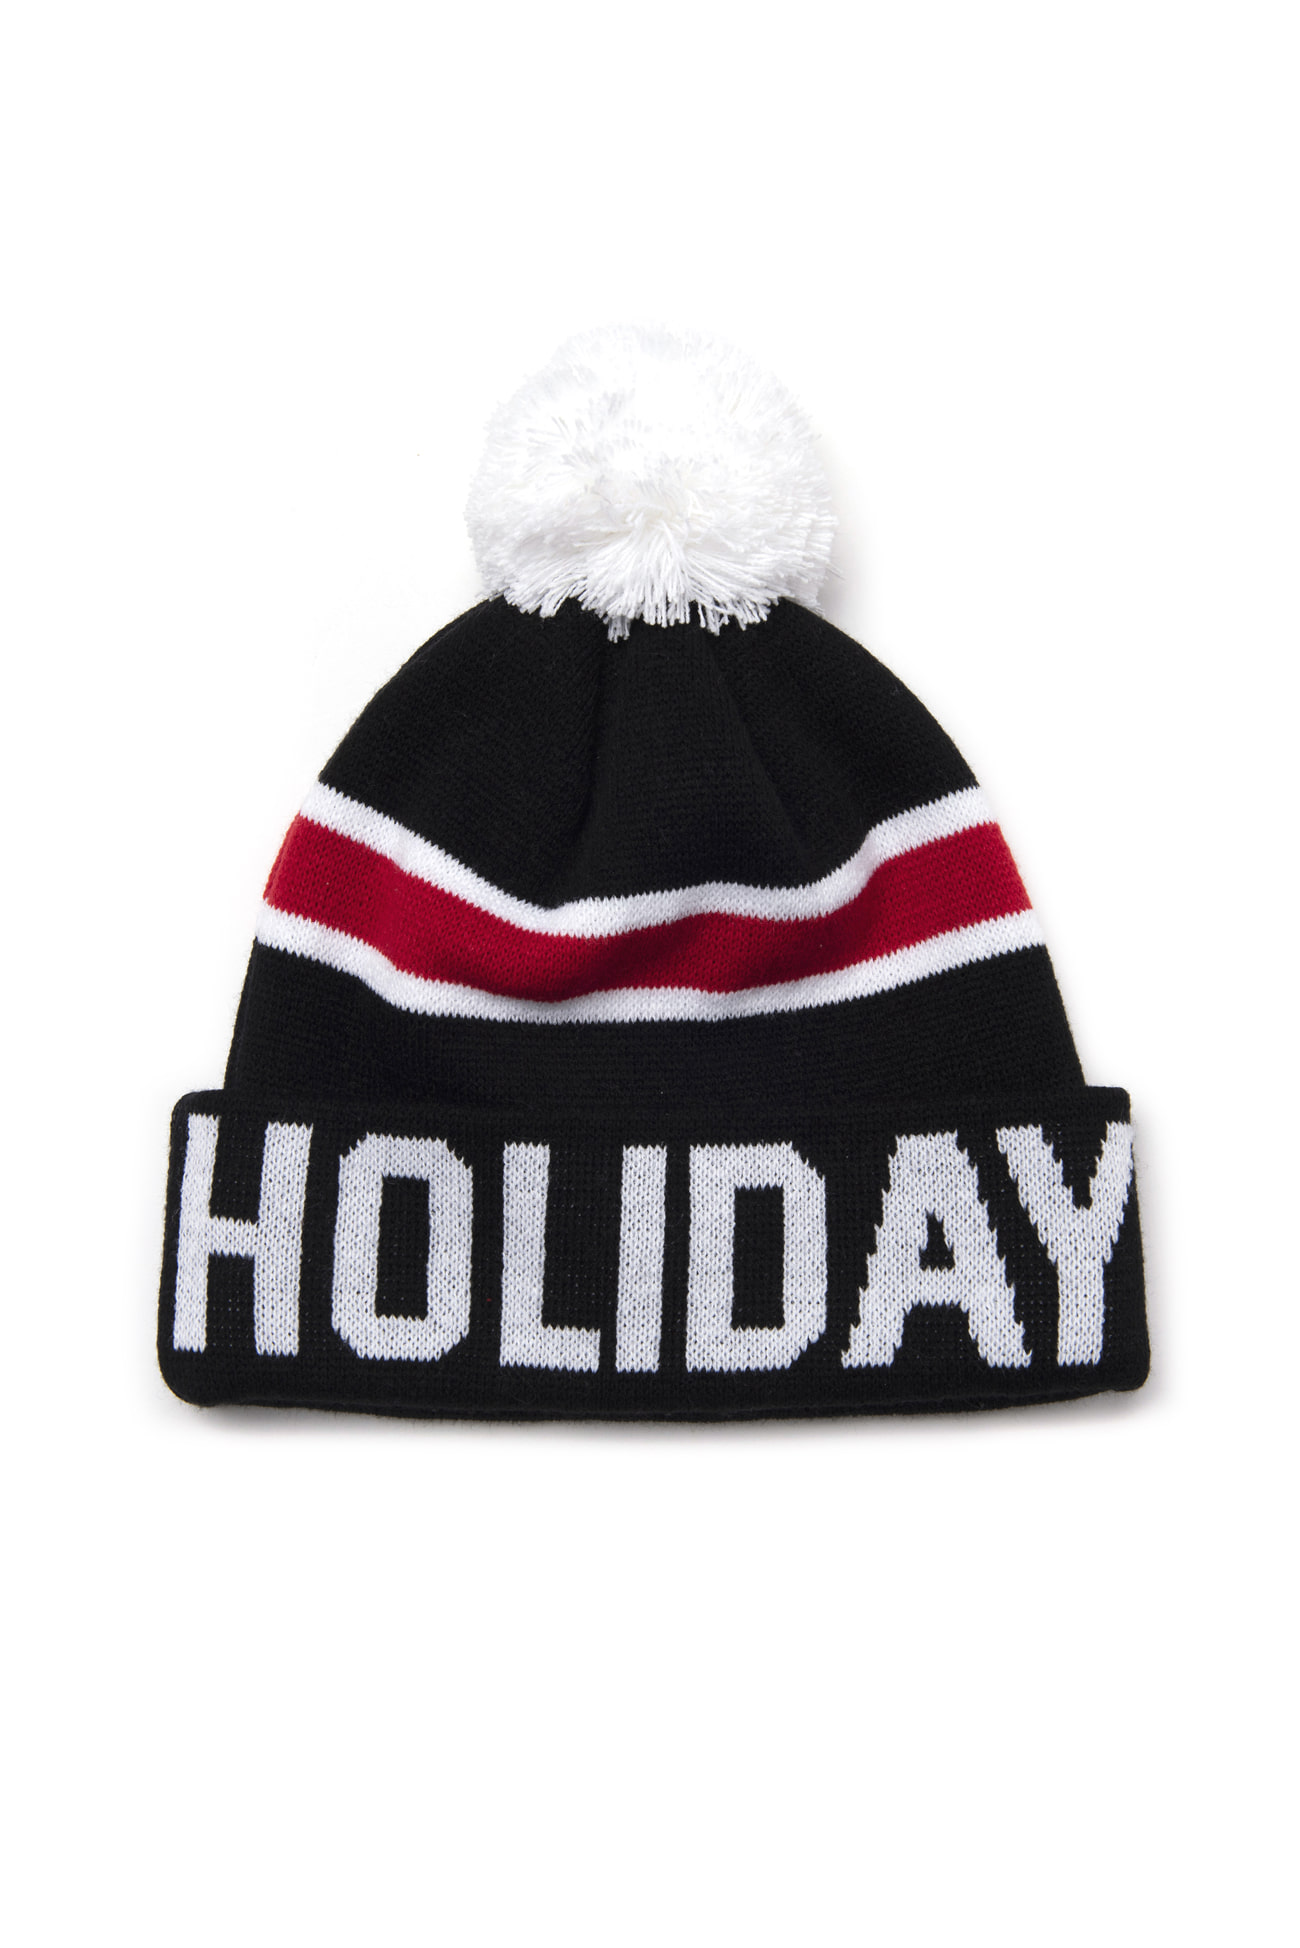 LINE beanie - blackHOLIDAY OUTERWEAR